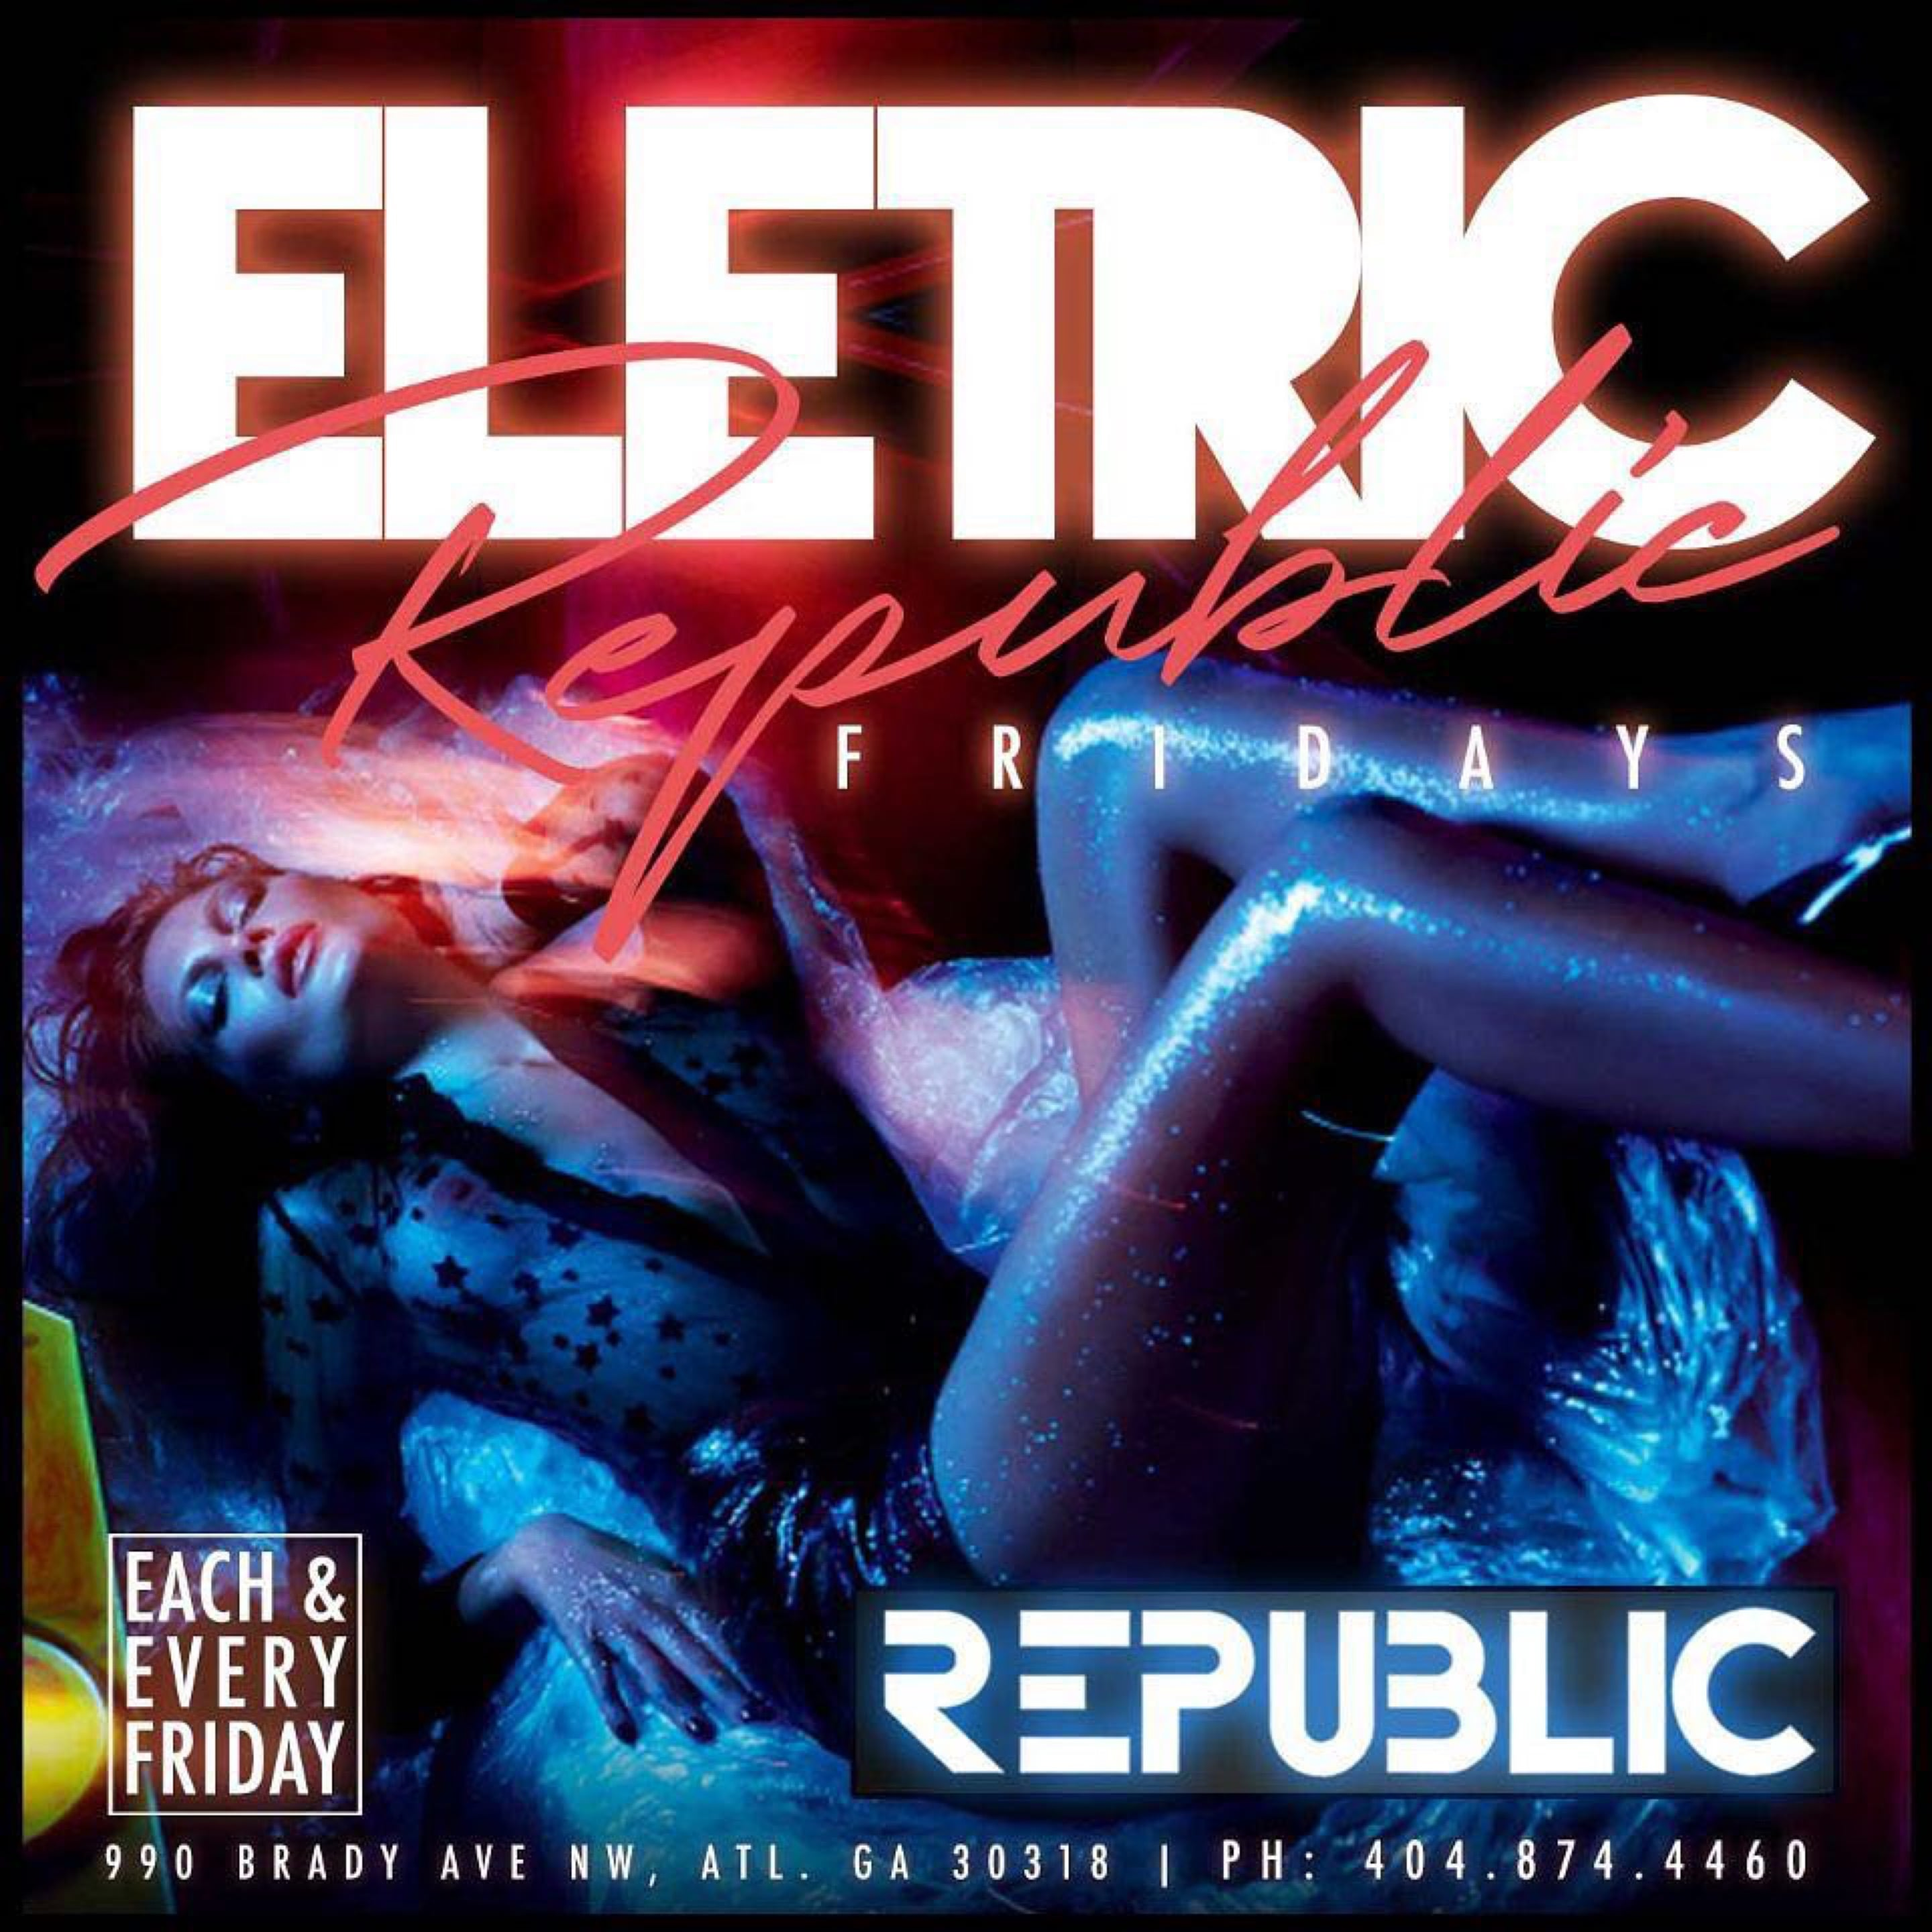 Republic Friday March 22nd